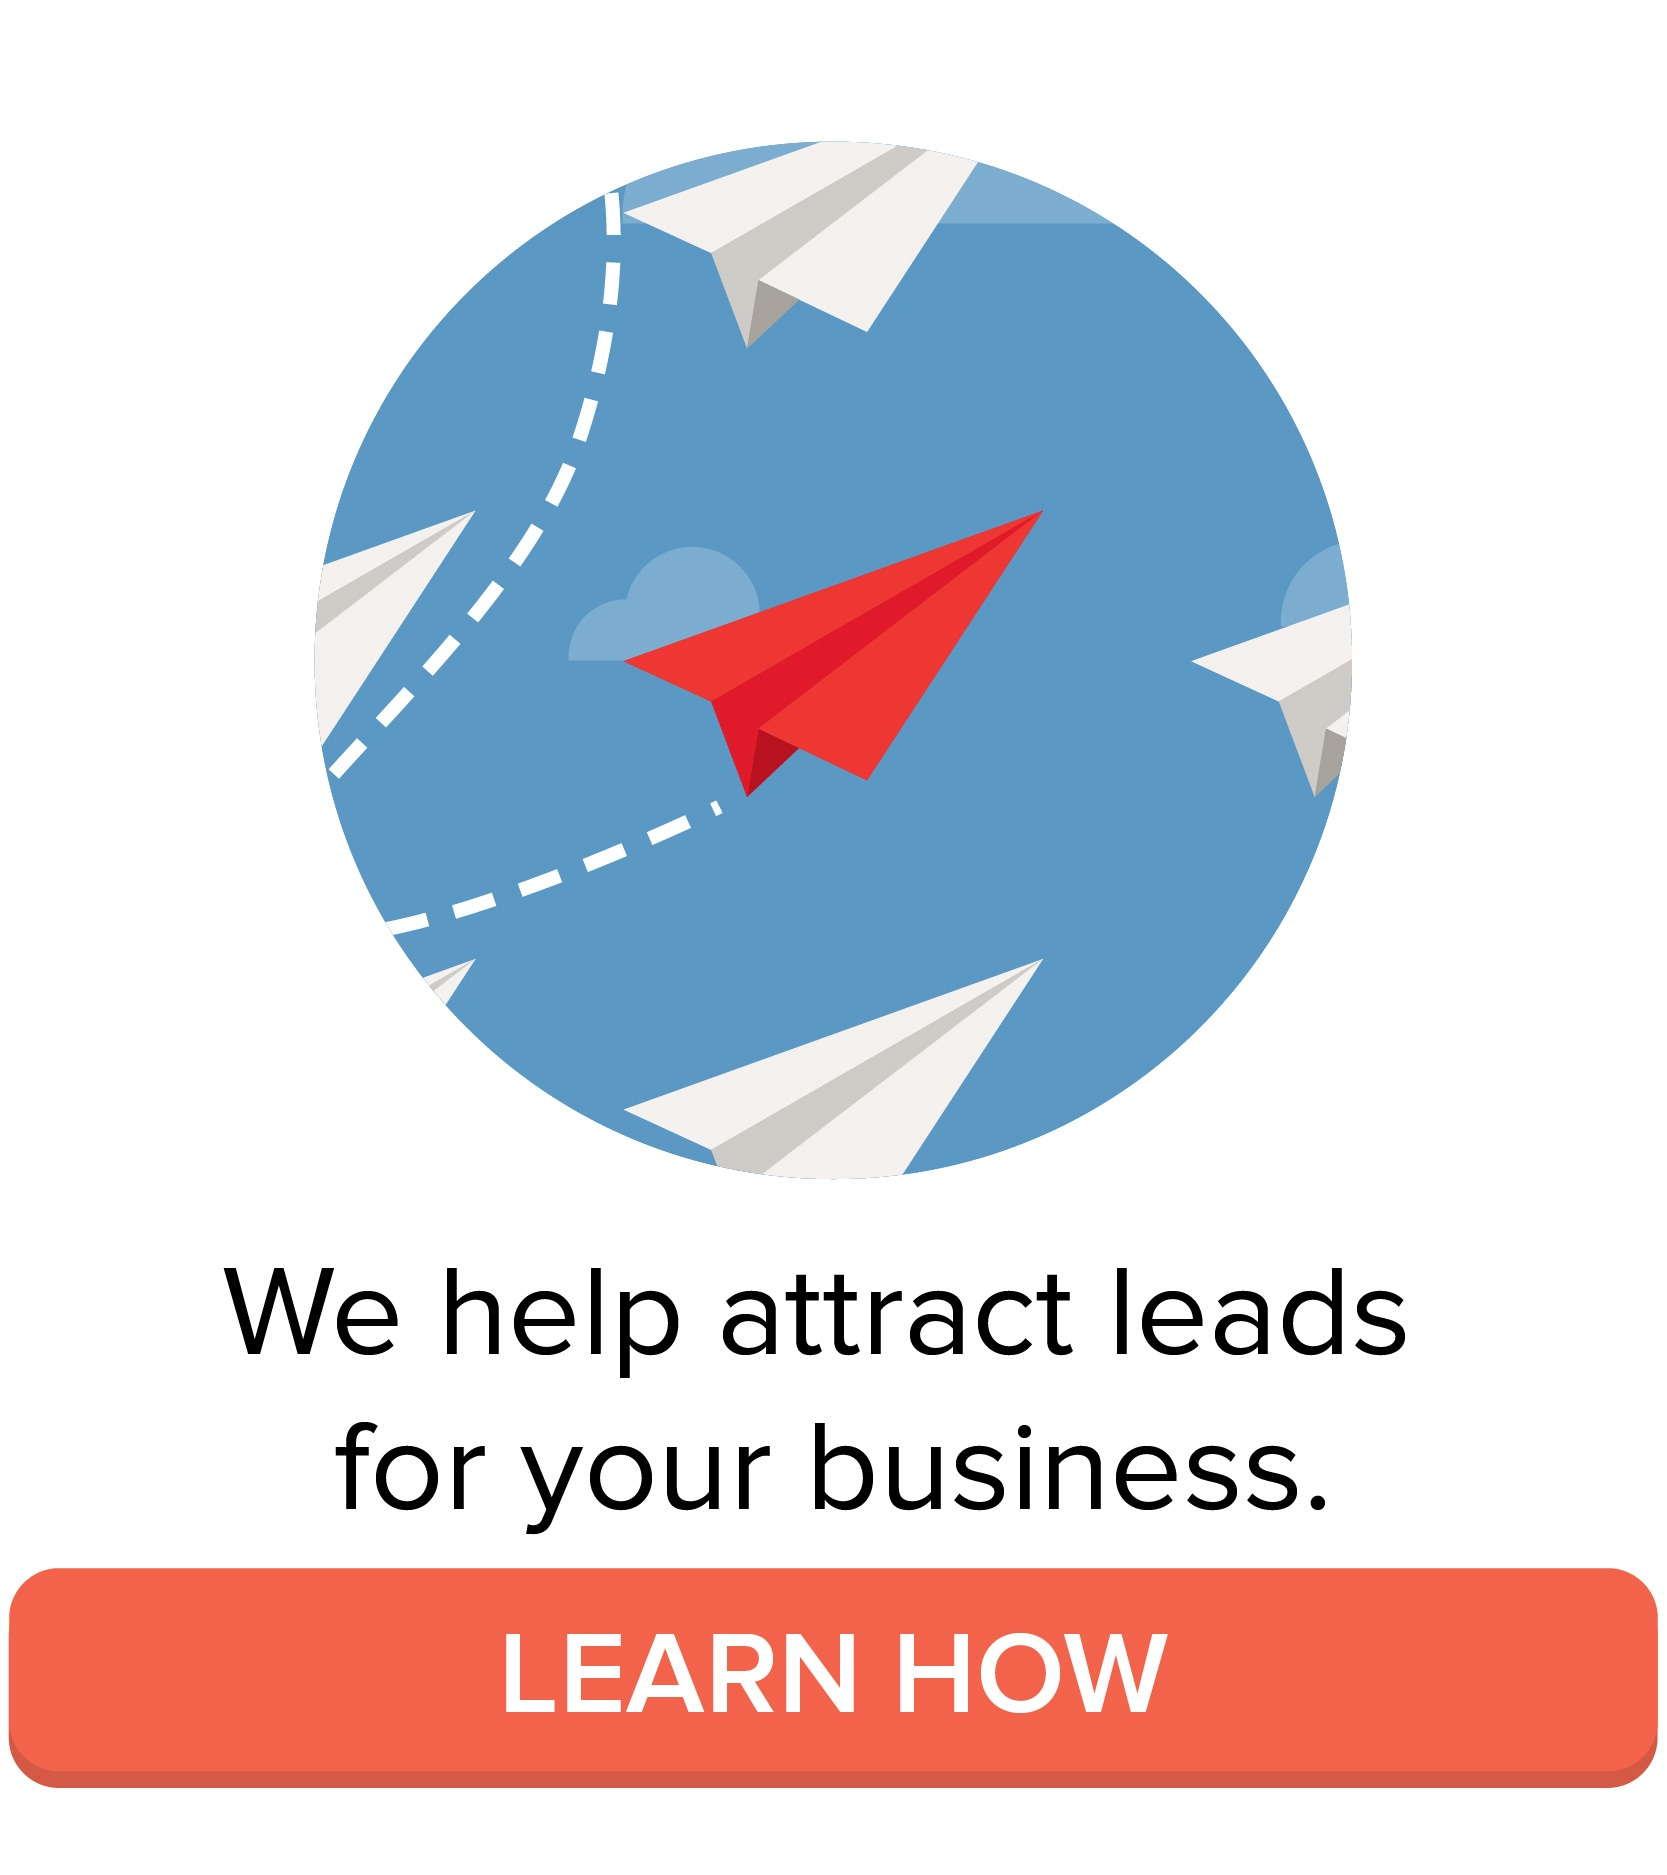 We help attract leads for your business. Learn how.